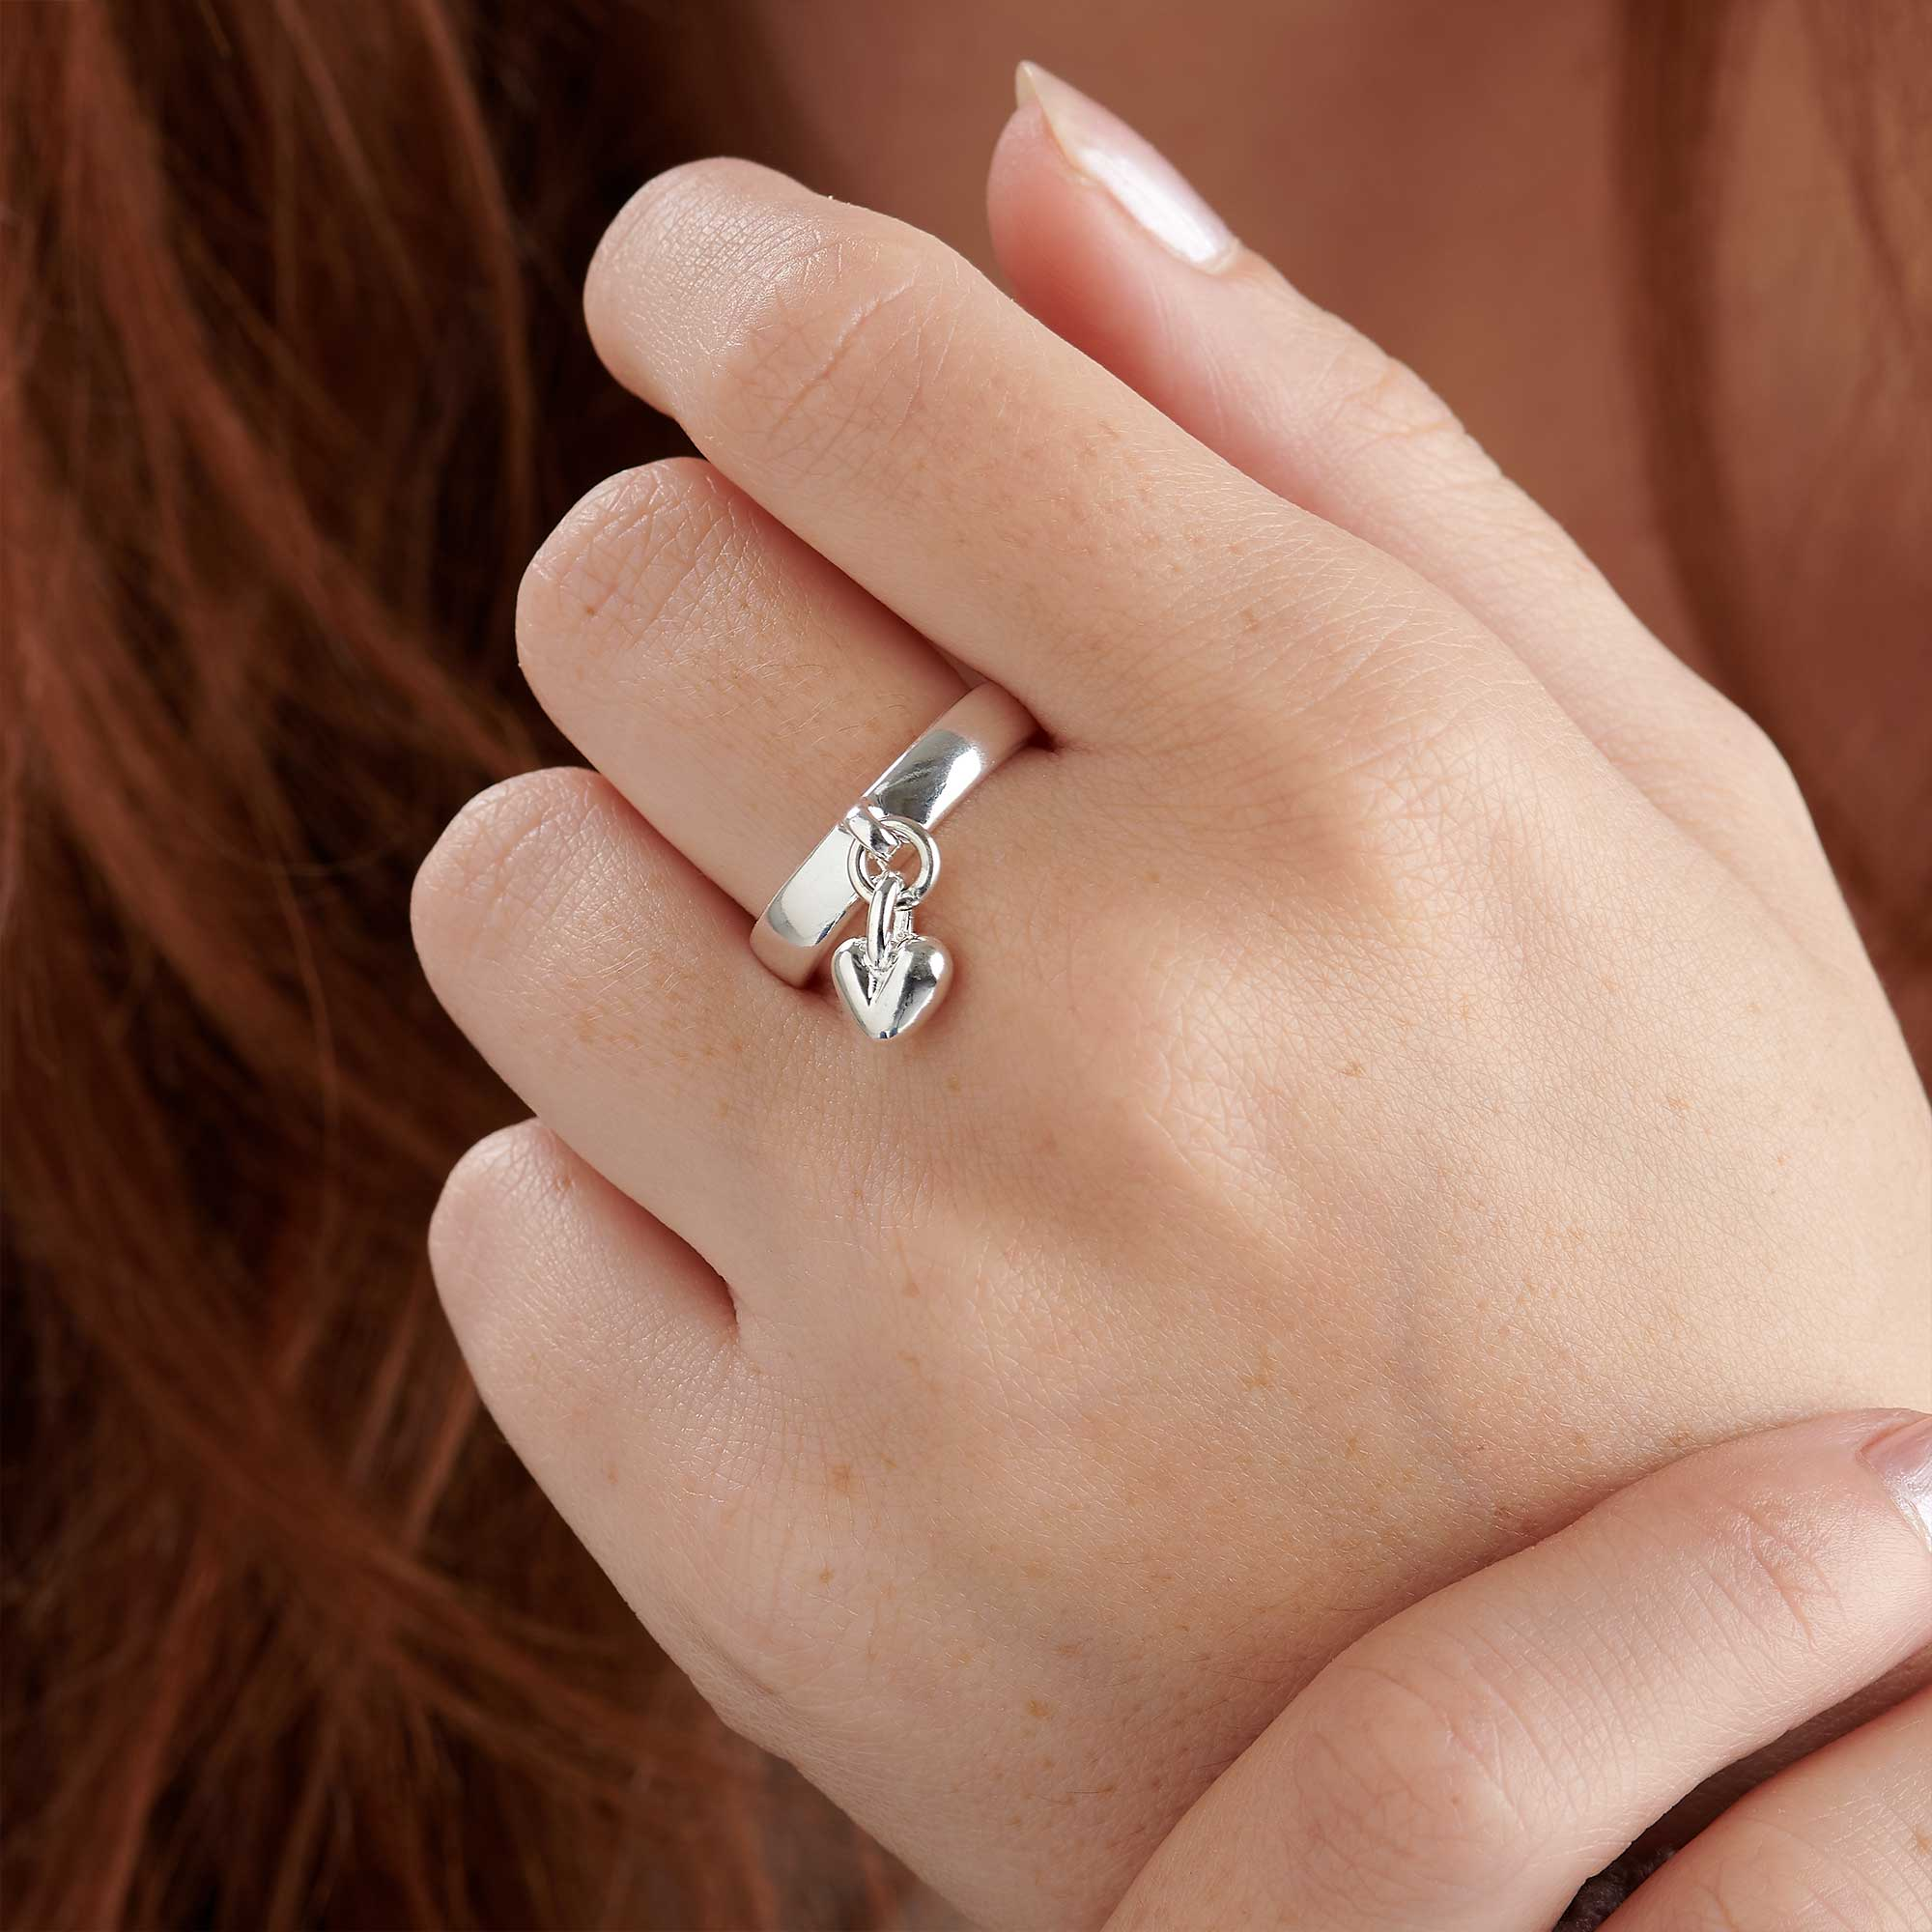 solid silver heart charm ring designer womens scarlett jewellery UK